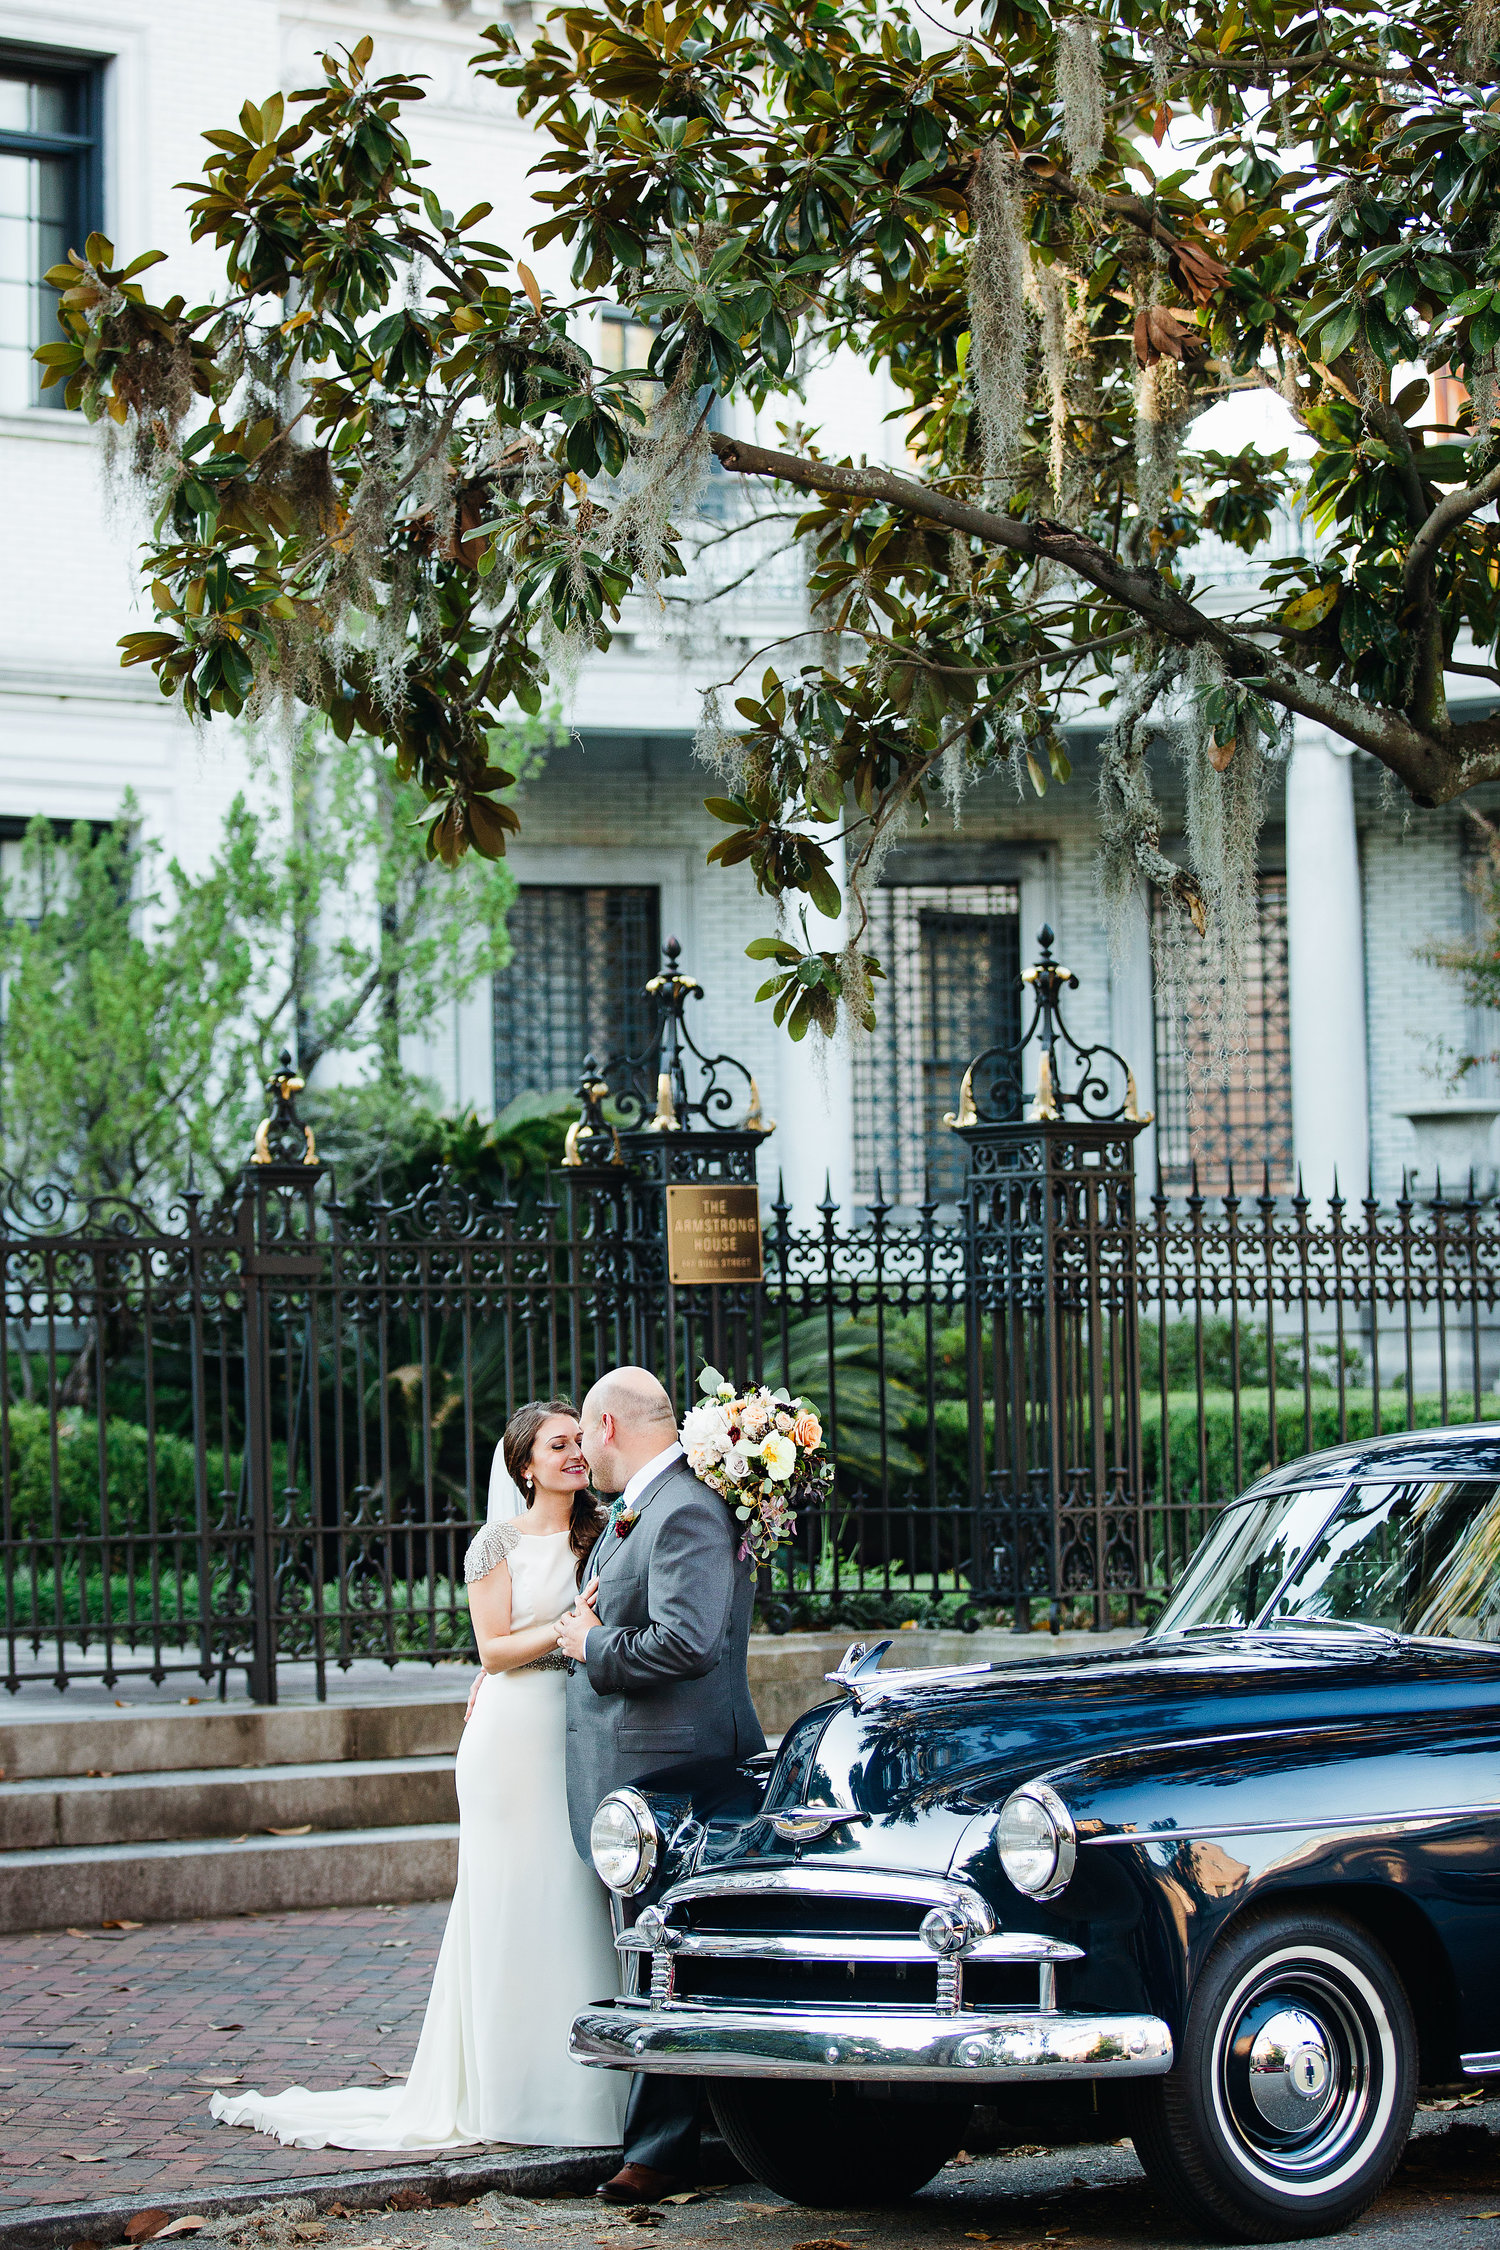 izzy-hudgins-photography-savannah-wedding-ivory-and-beau-bridal-boutique-savannah-wedding-planner-colonial-house-of-flowers-forsyth-park-wedding-old-fort-jackson-wedding-squidwed-films-savannah-boutique-savannah-weddings-36.jpg